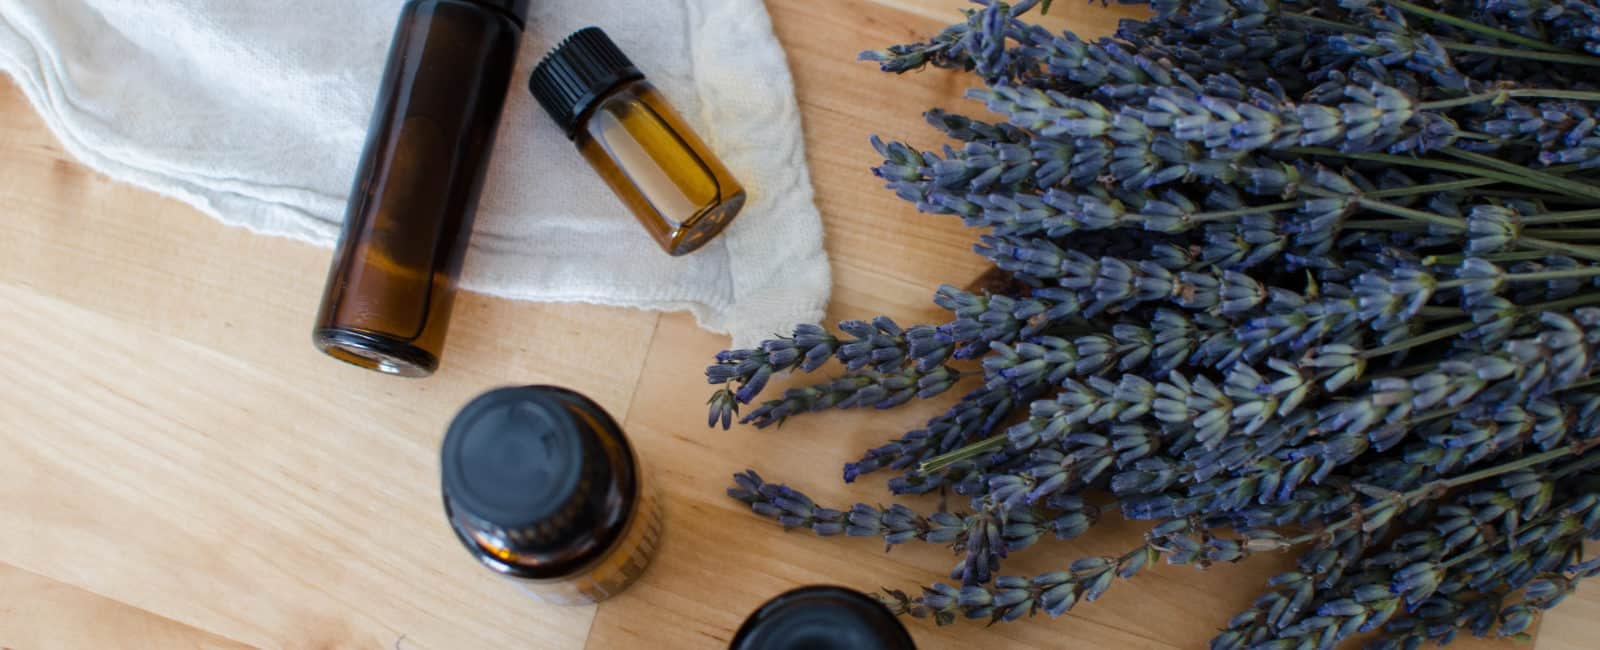 How to Treat Ear Infections with Herbs